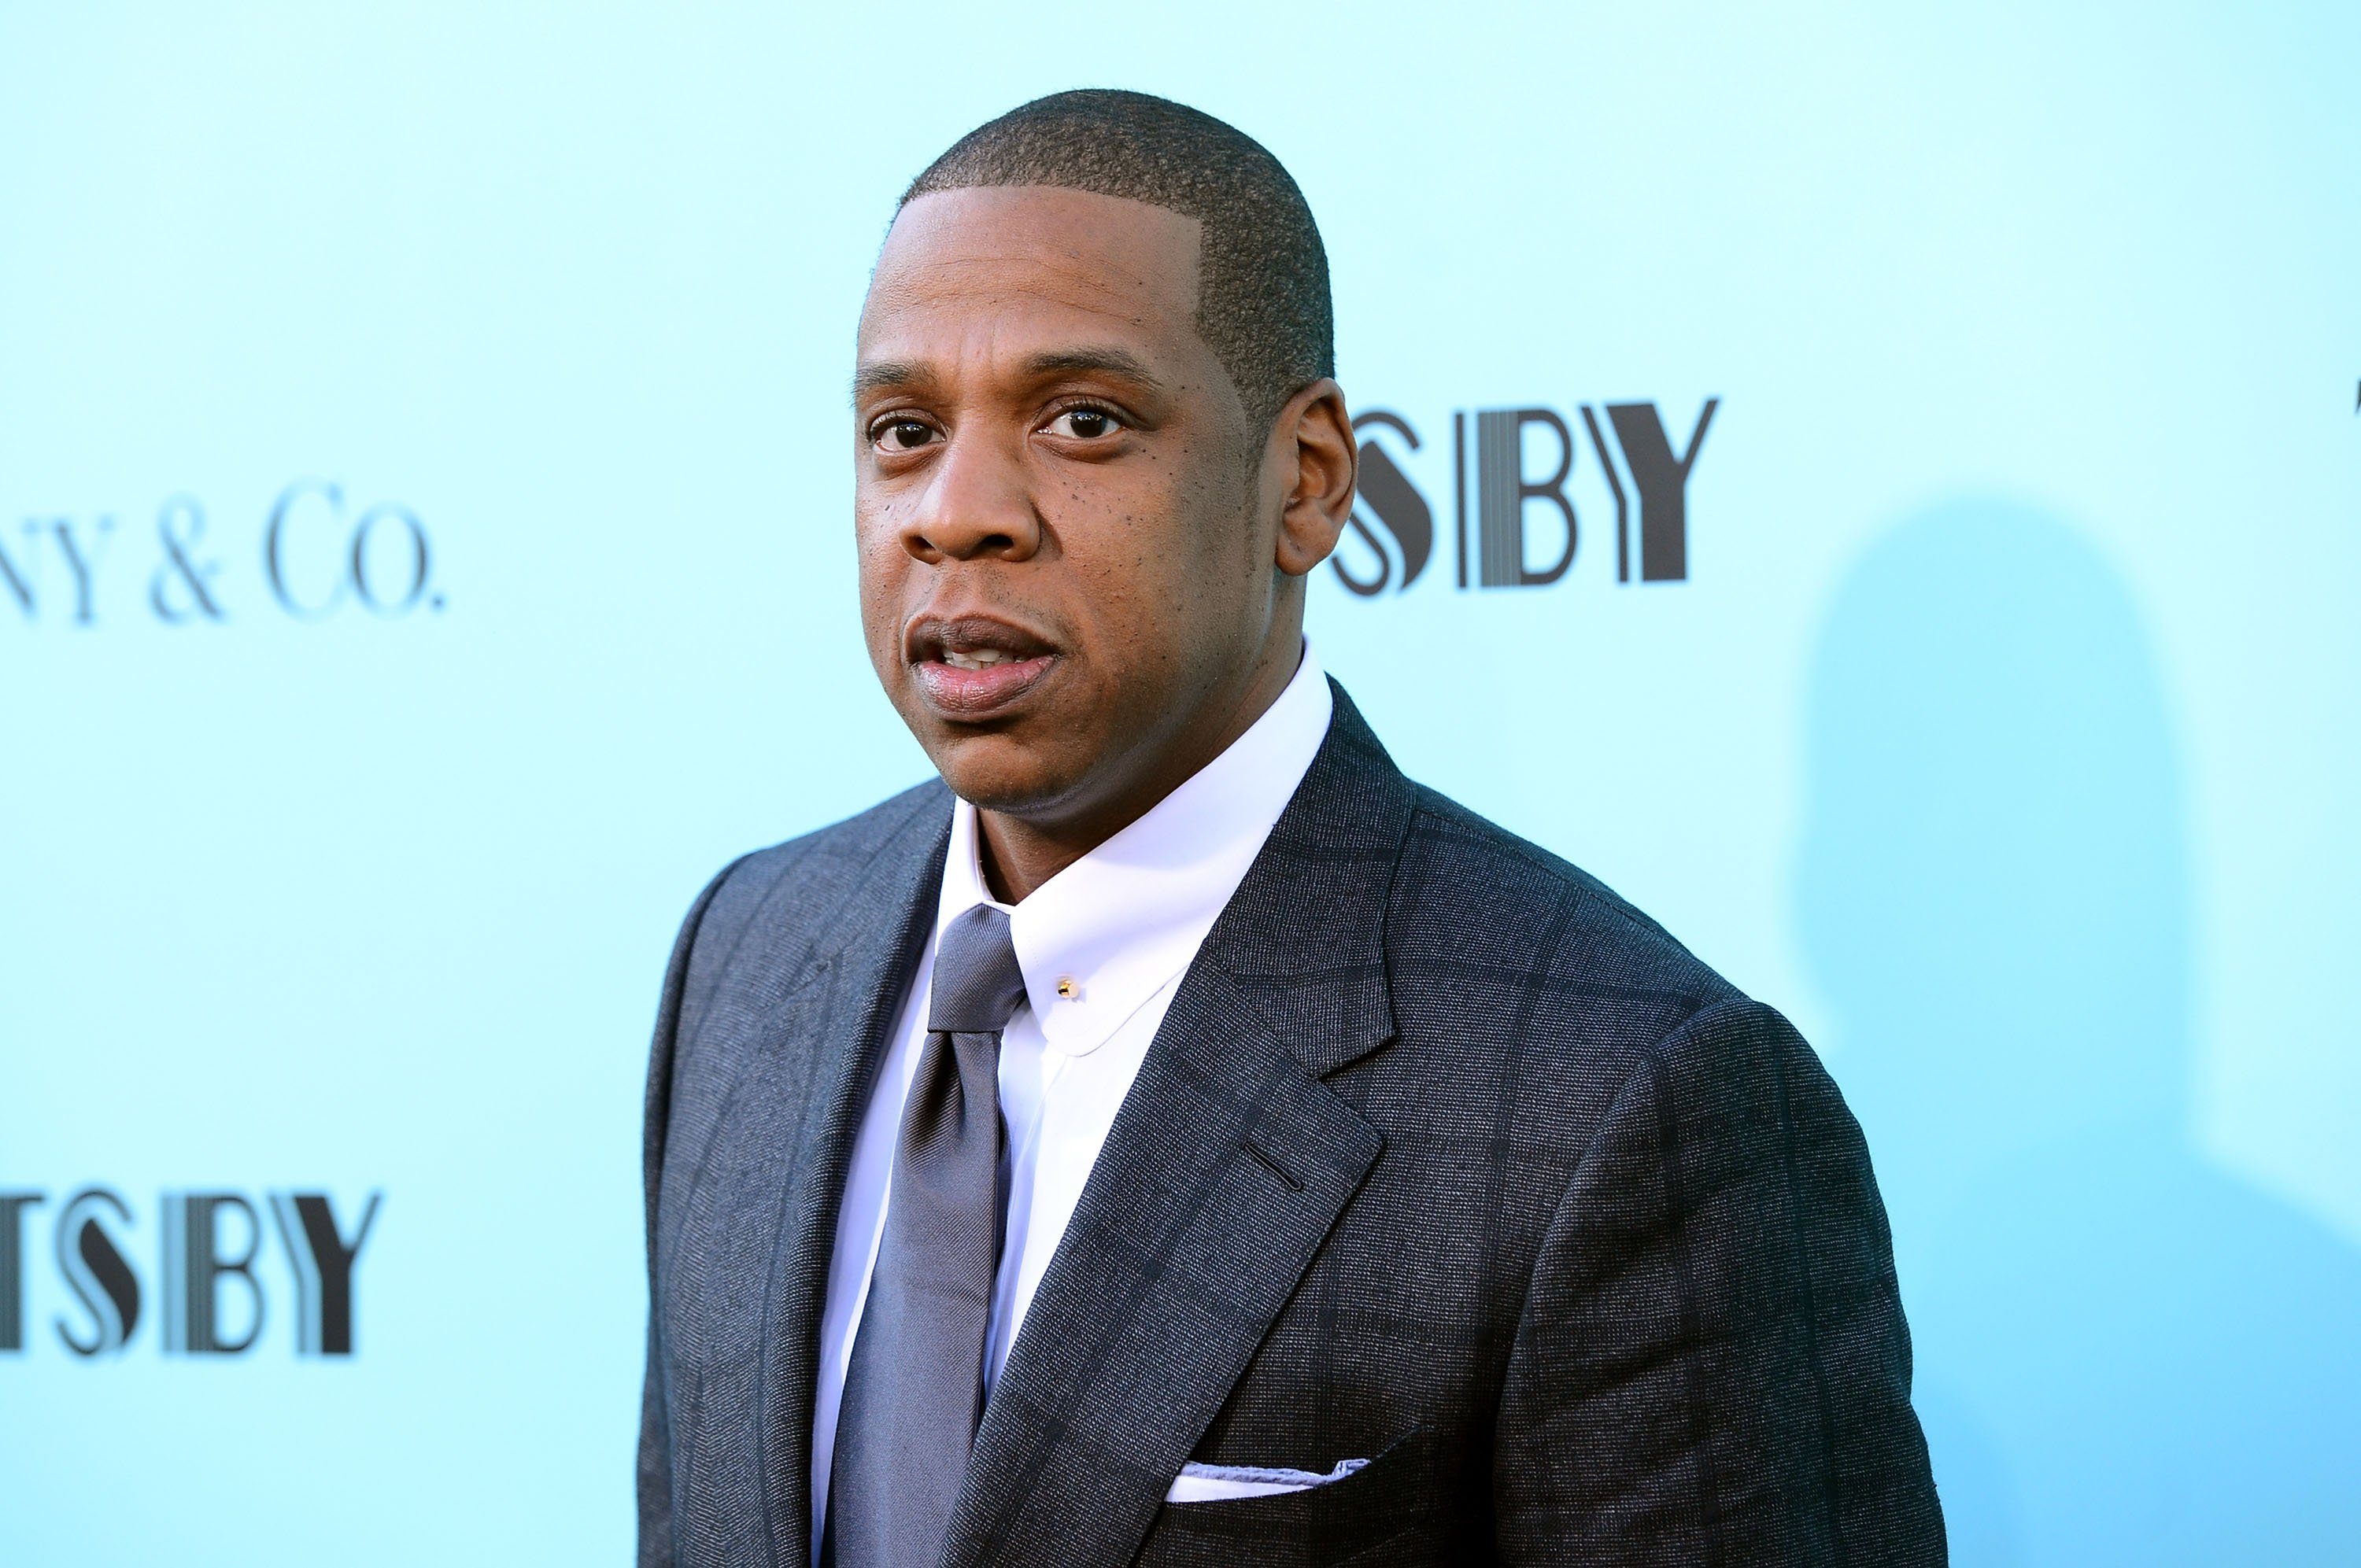 """Jay-Z attends the """"The Great Gatsby"""" world premiere on May 1, 2013. 